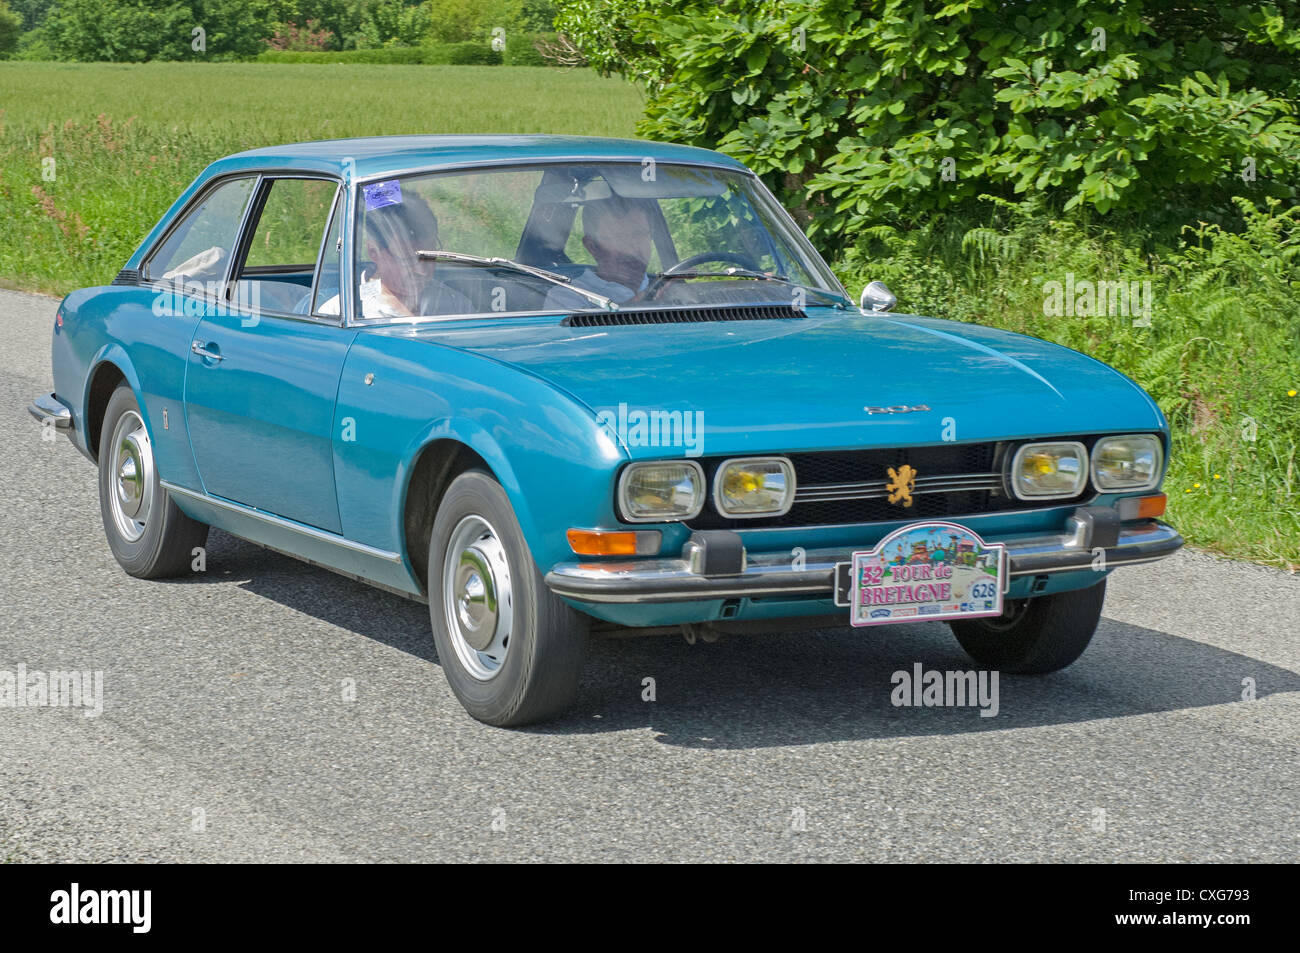 peugeot 504 stockfotos peugeot 504 bilder alamy. Black Bedroom Furniture Sets. Home Design Ideas